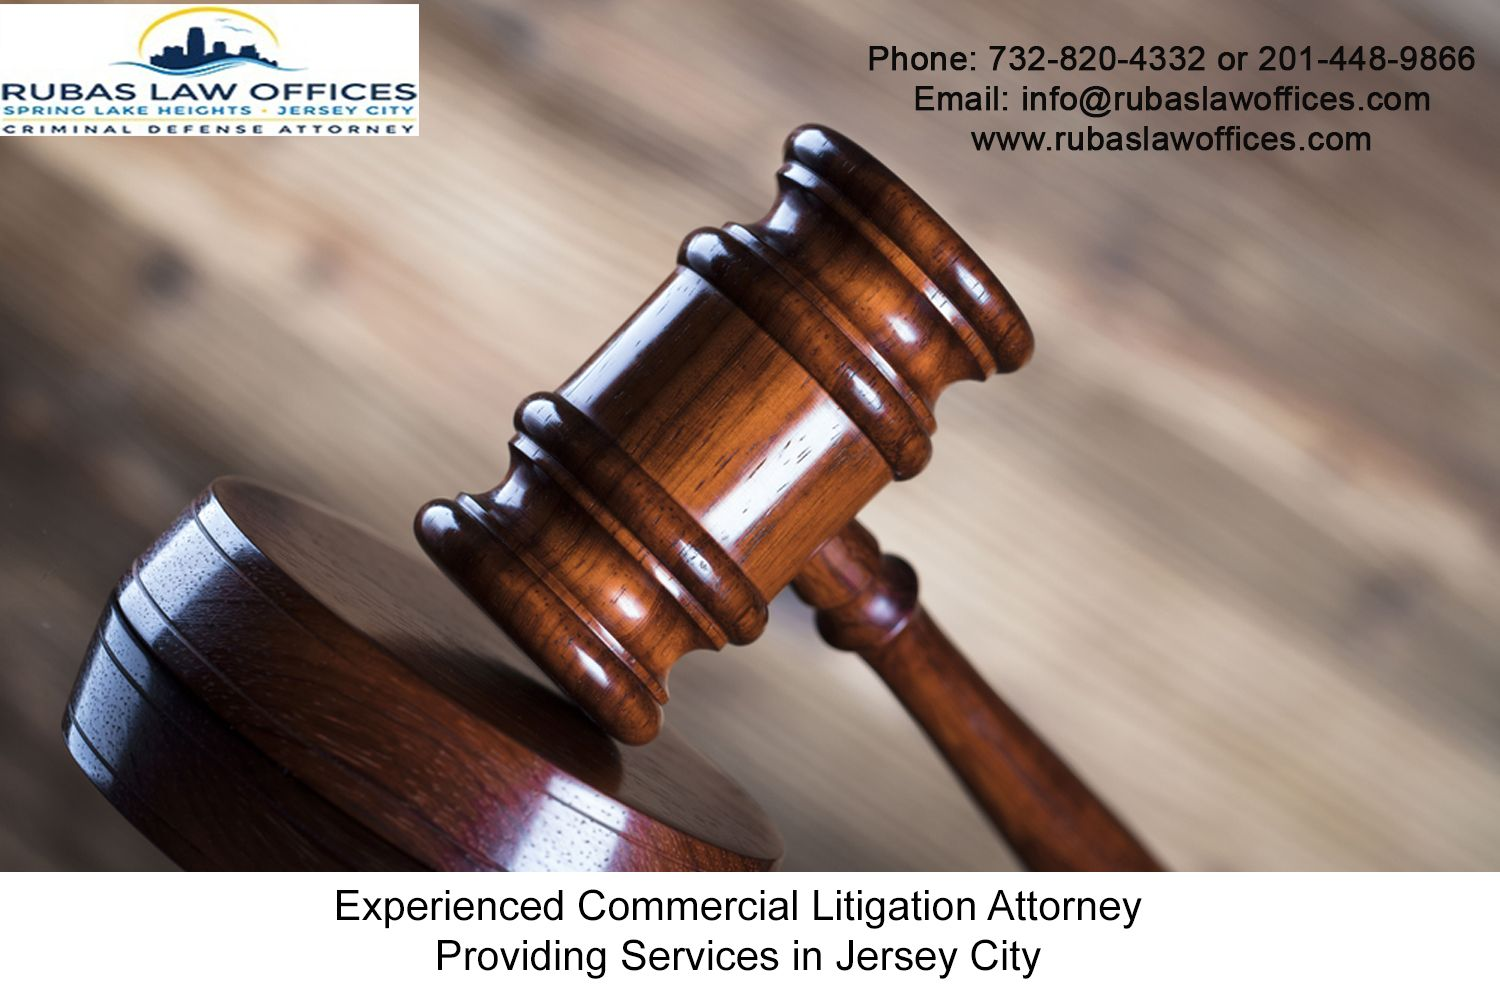 Experienced Commercial Litigation Attorney Providing